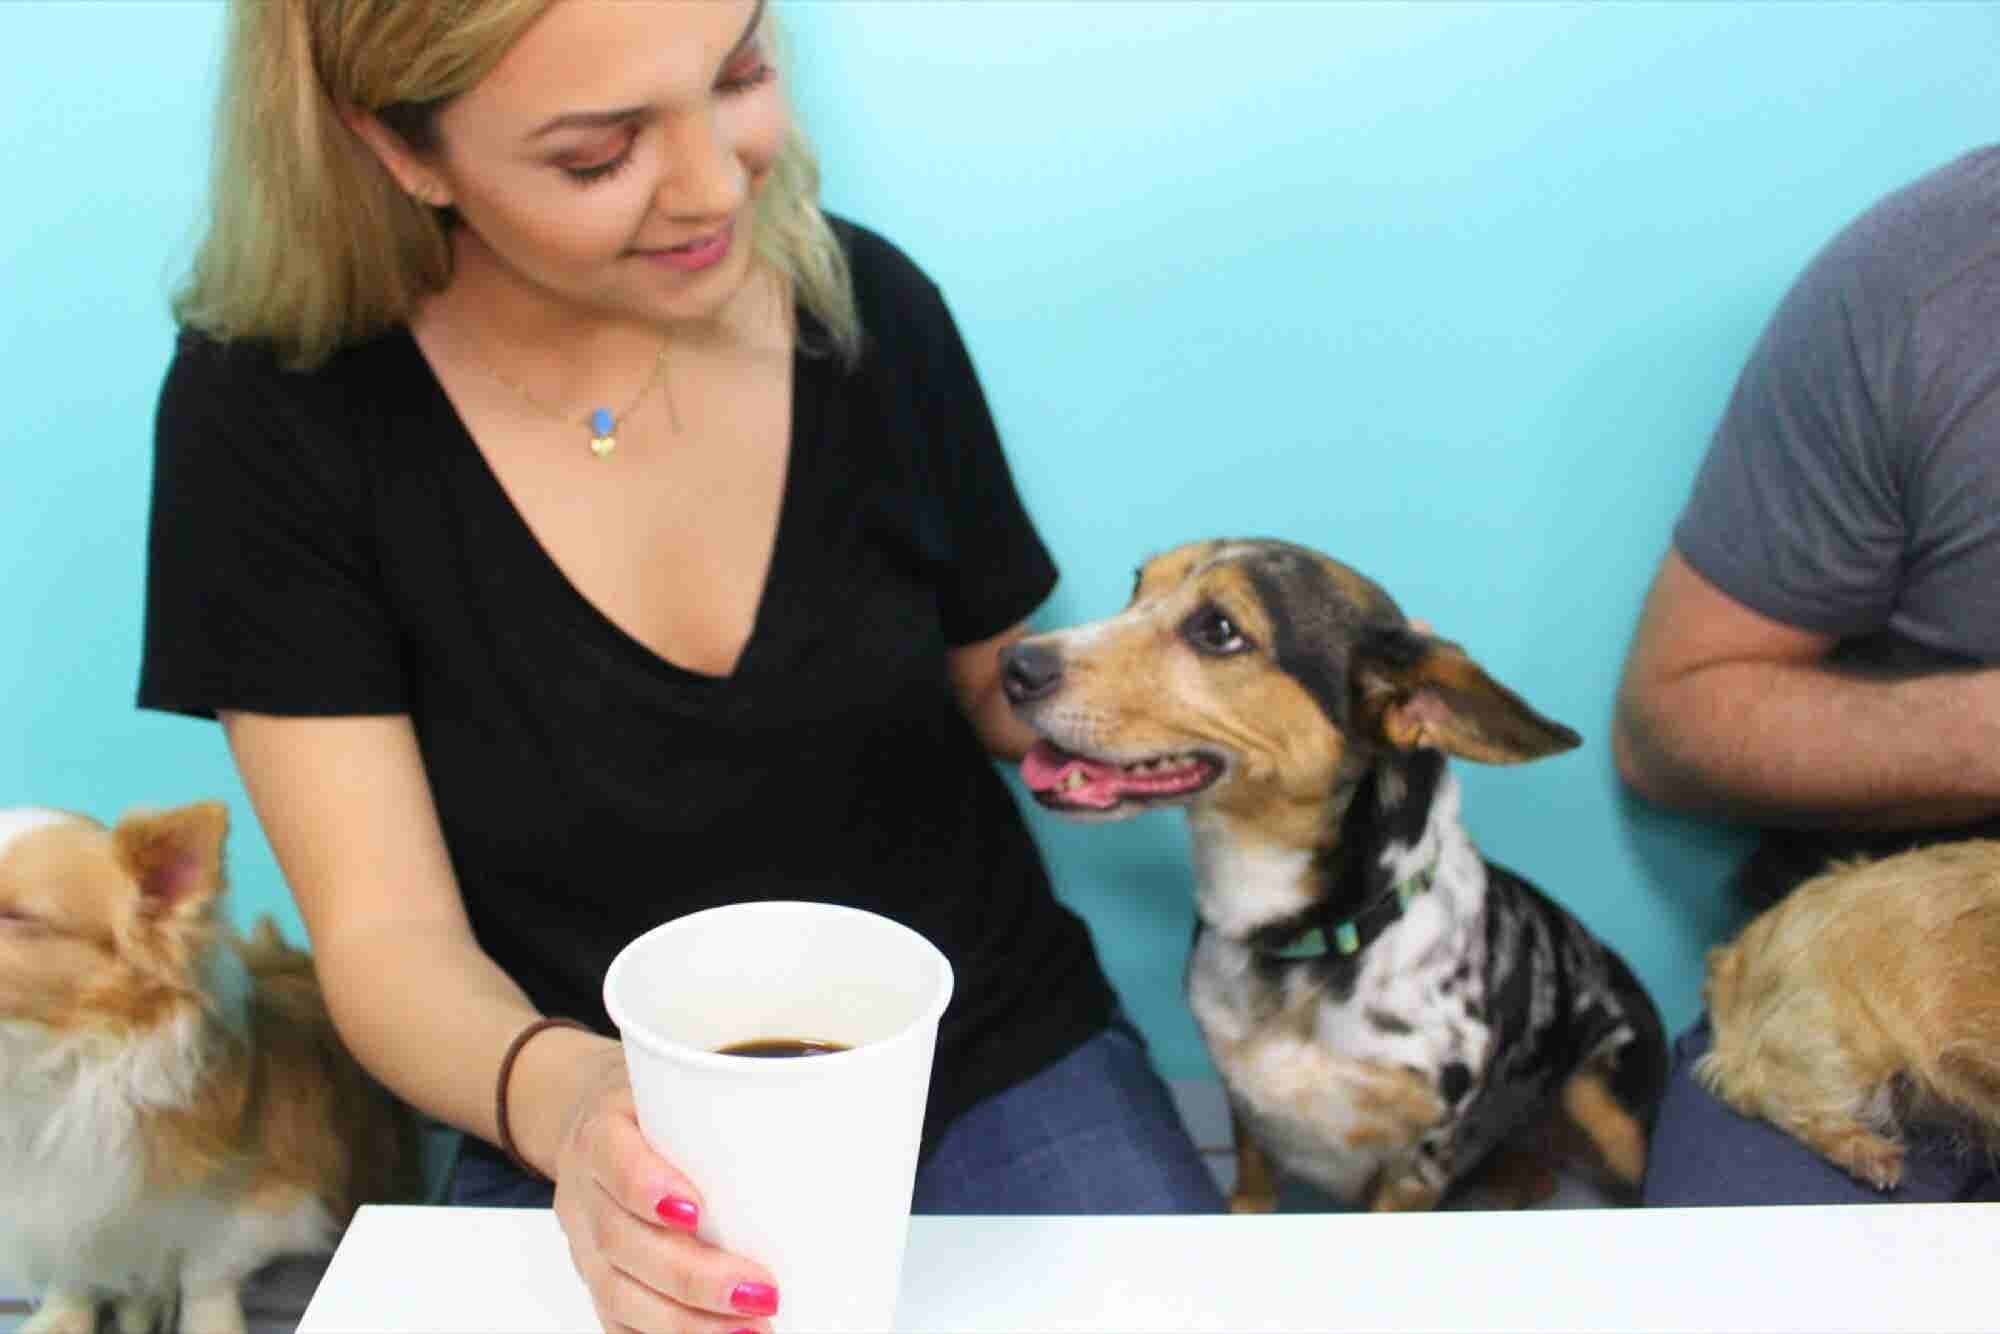 Want to Run a Pet Café? These Founders' Tips Can Help.